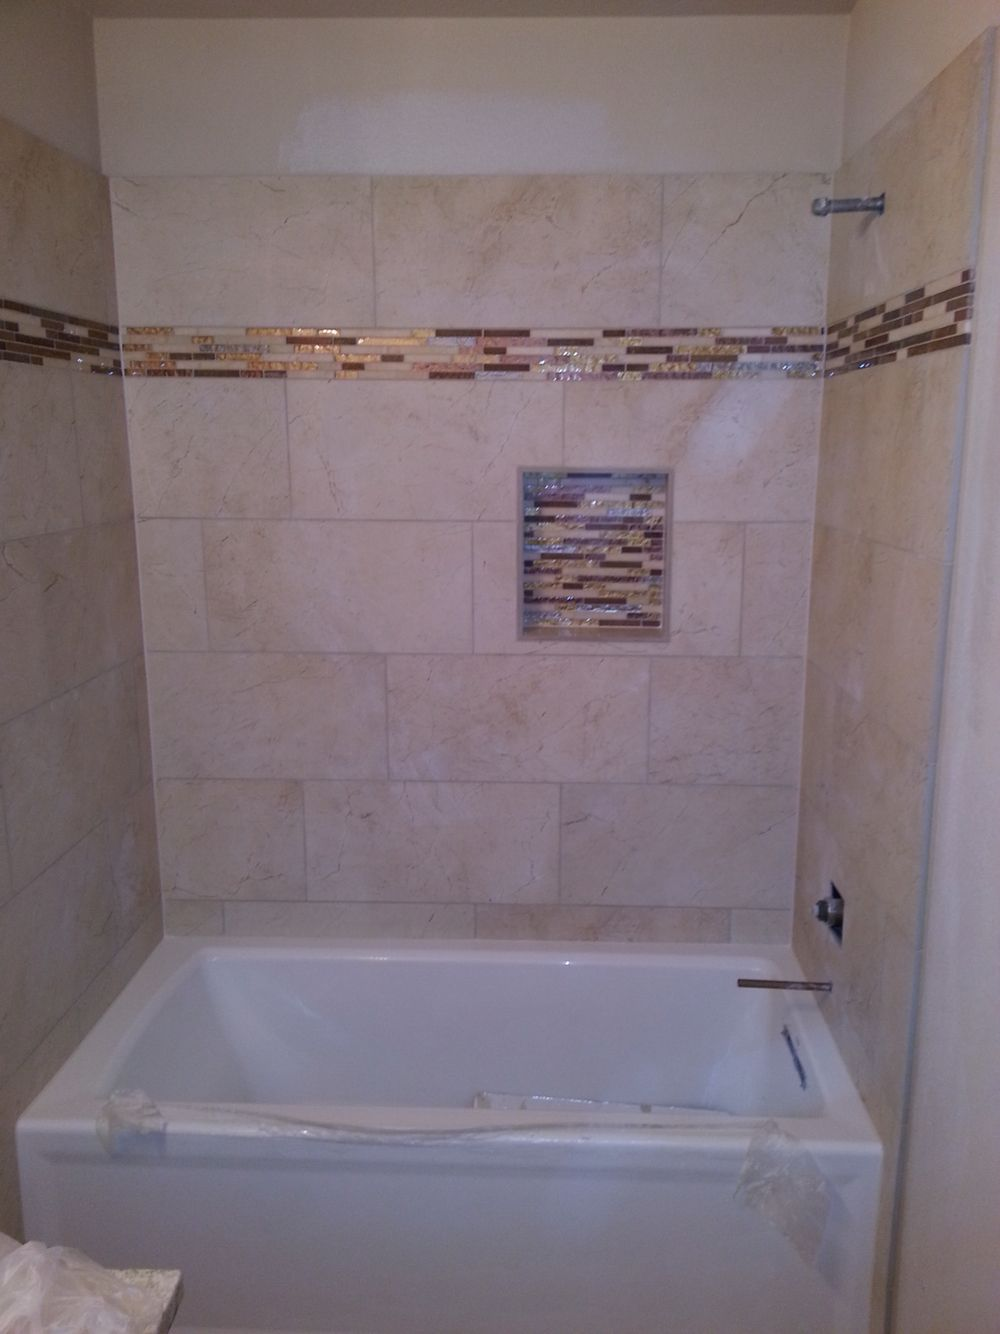 Atx tile built tub surround 12x24 inch tile stacked on thirds with recessed shampoo shelf 2015 - Tile shower surround ideas ...